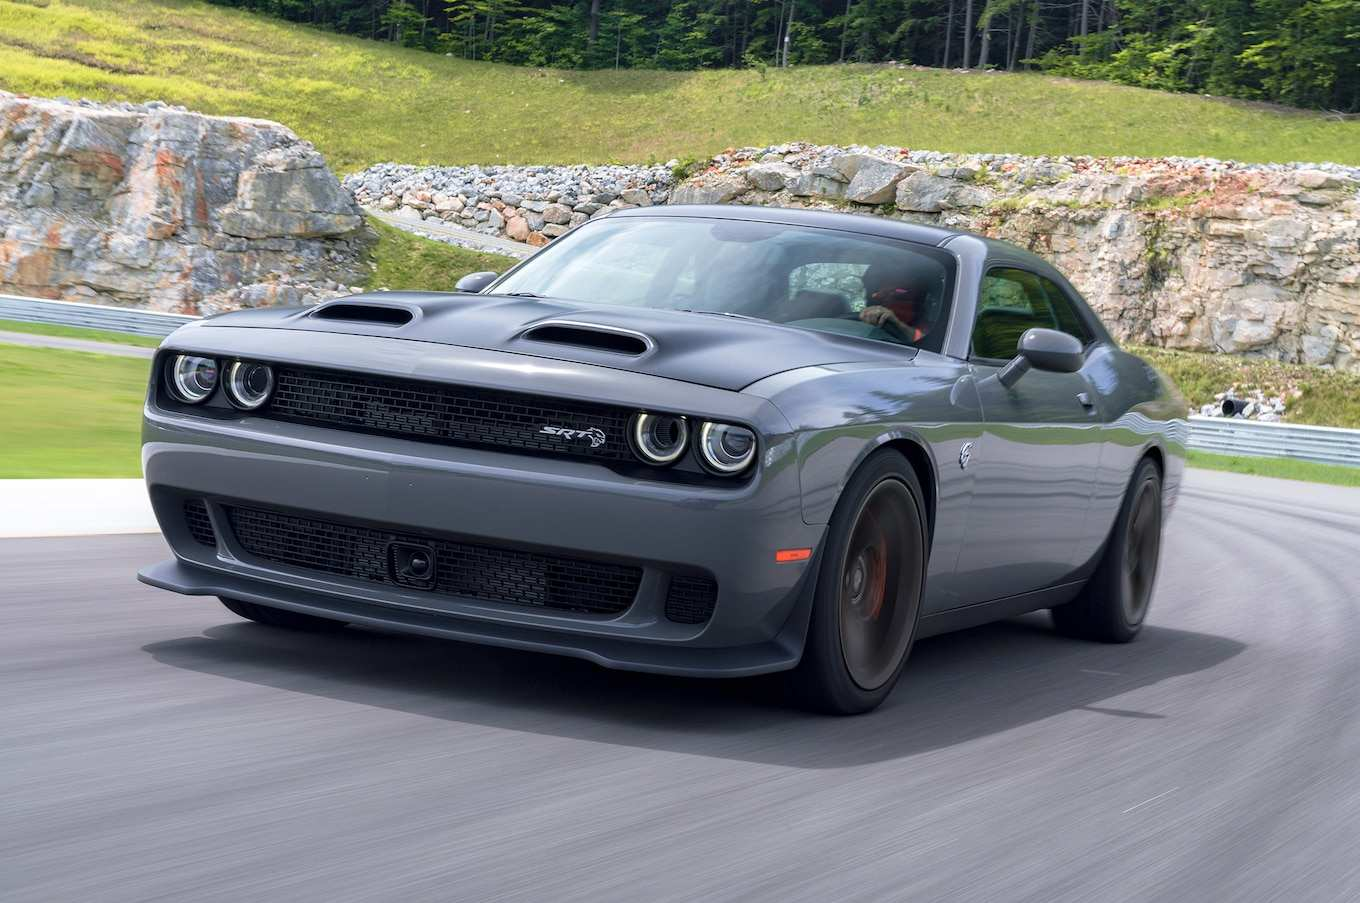 86 All New 2019 Dodge Hellcat Widebody Engine for 2019 Dodge Hellcat Widebody